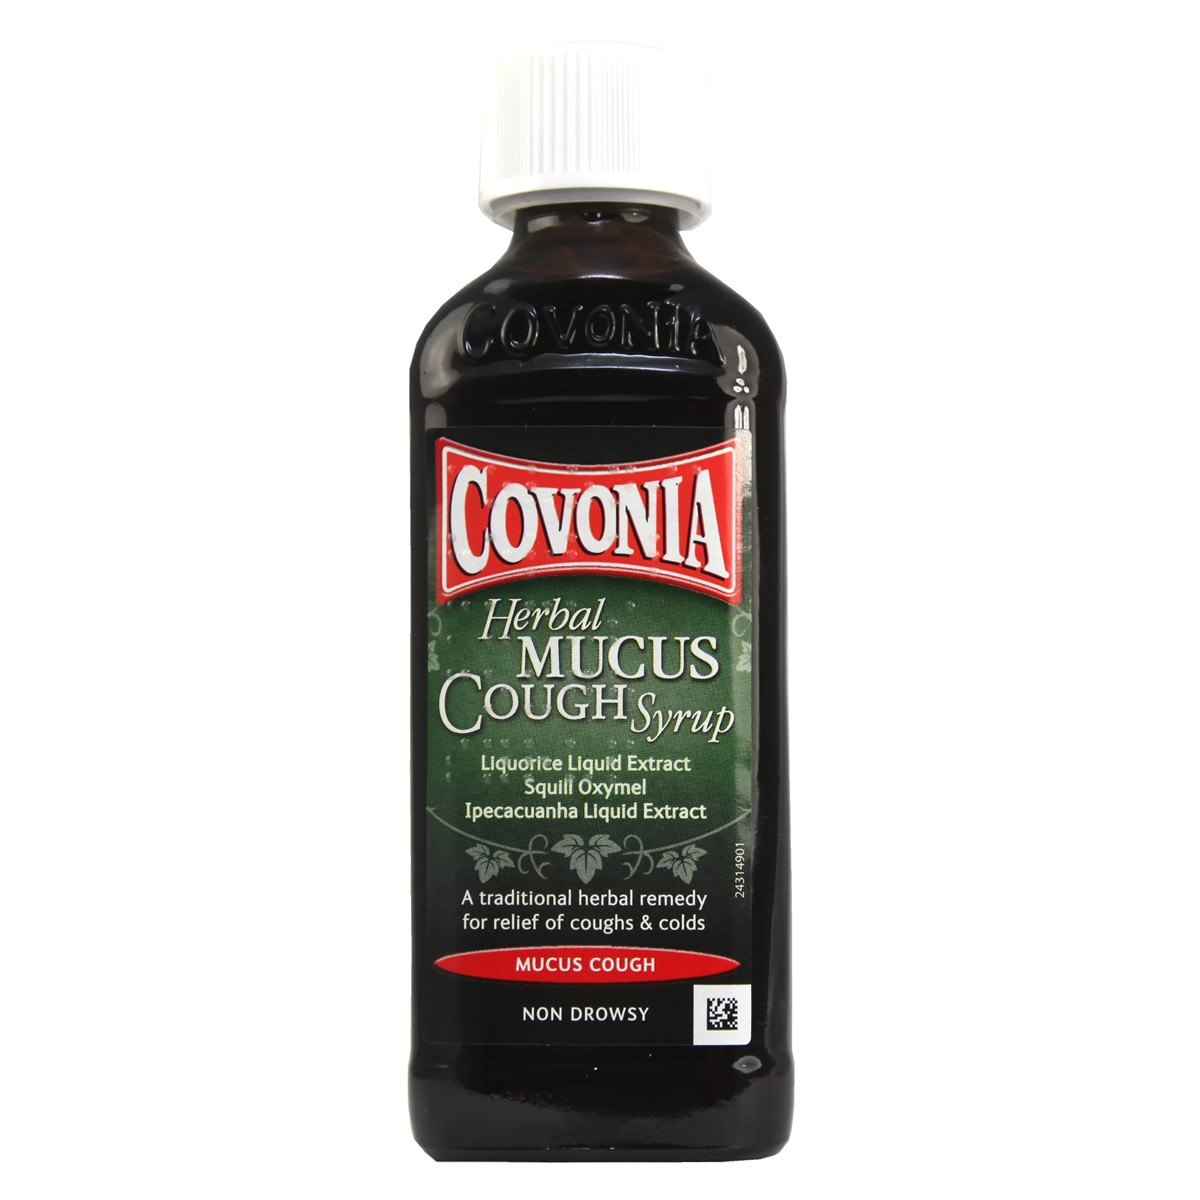 Covonia Herbal Mucus Cough Syrup